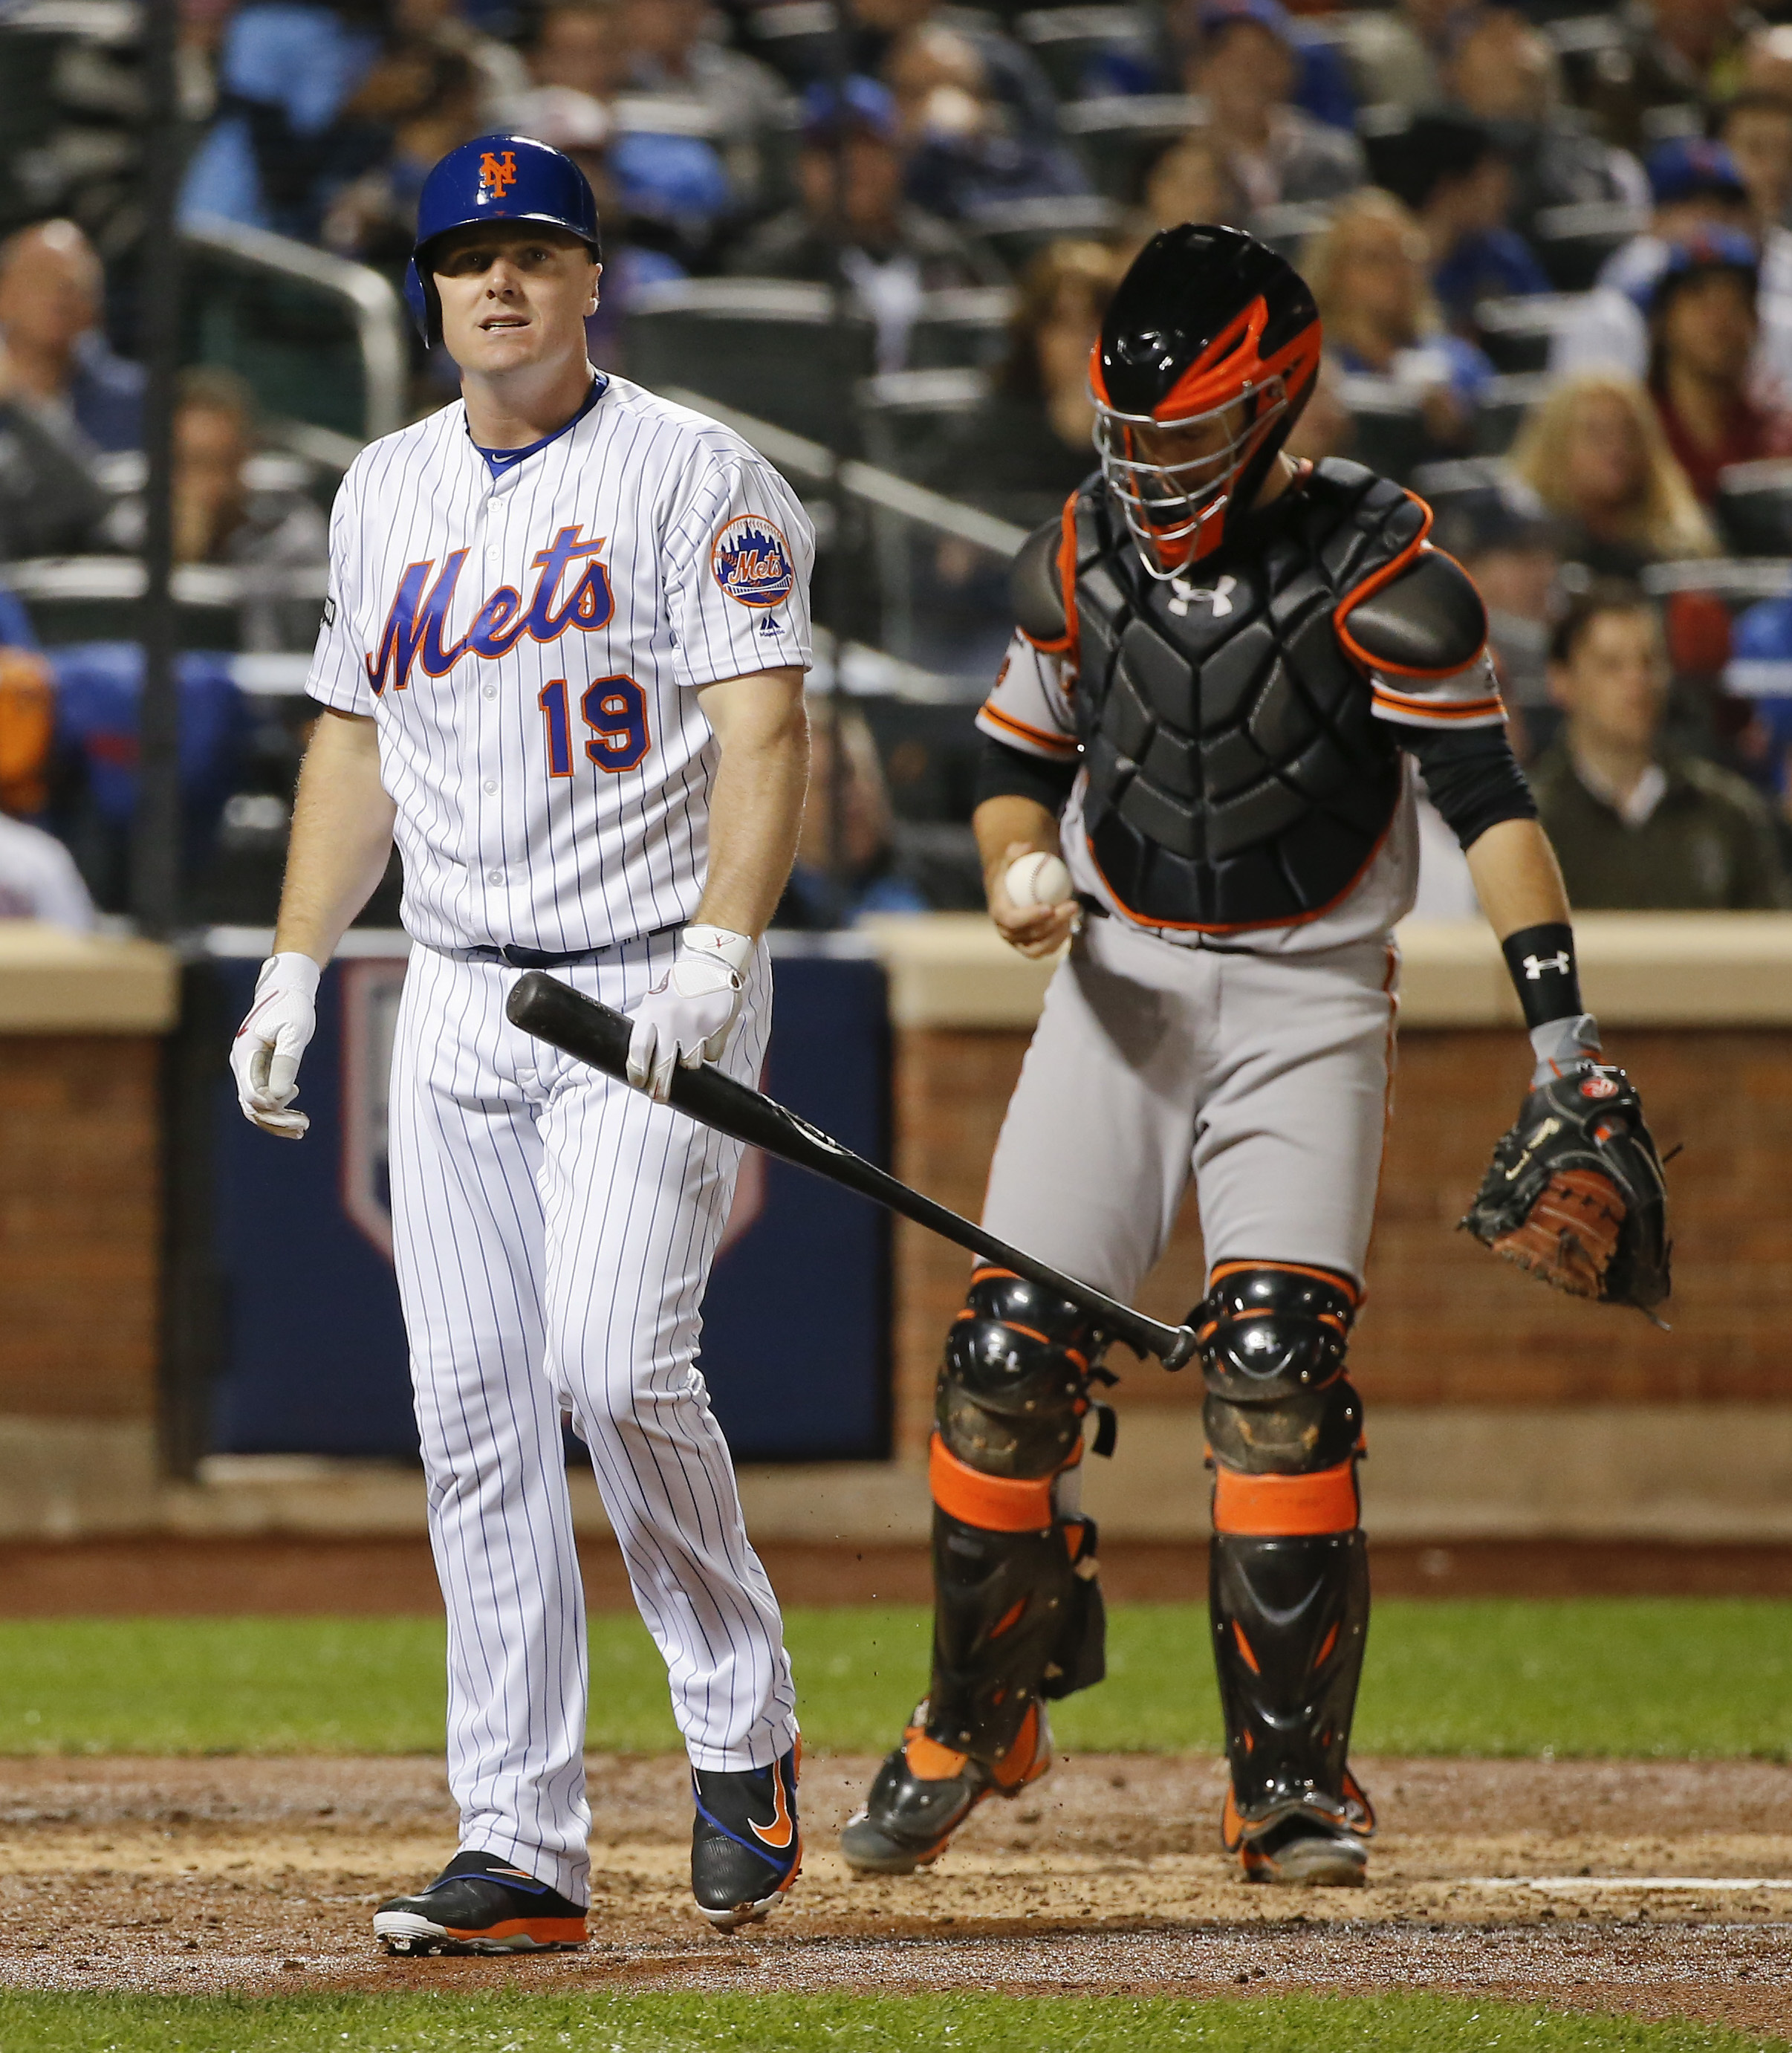 New York Mets' Jay Bruce (19) reacts after striking out against the San Francisco Giants during the fifth inning of the National League wild-card baseball game against the San Francisco Giants, Wednesday, Oct. 5, 2016, in New York. (AP Photo/Kathy Willens